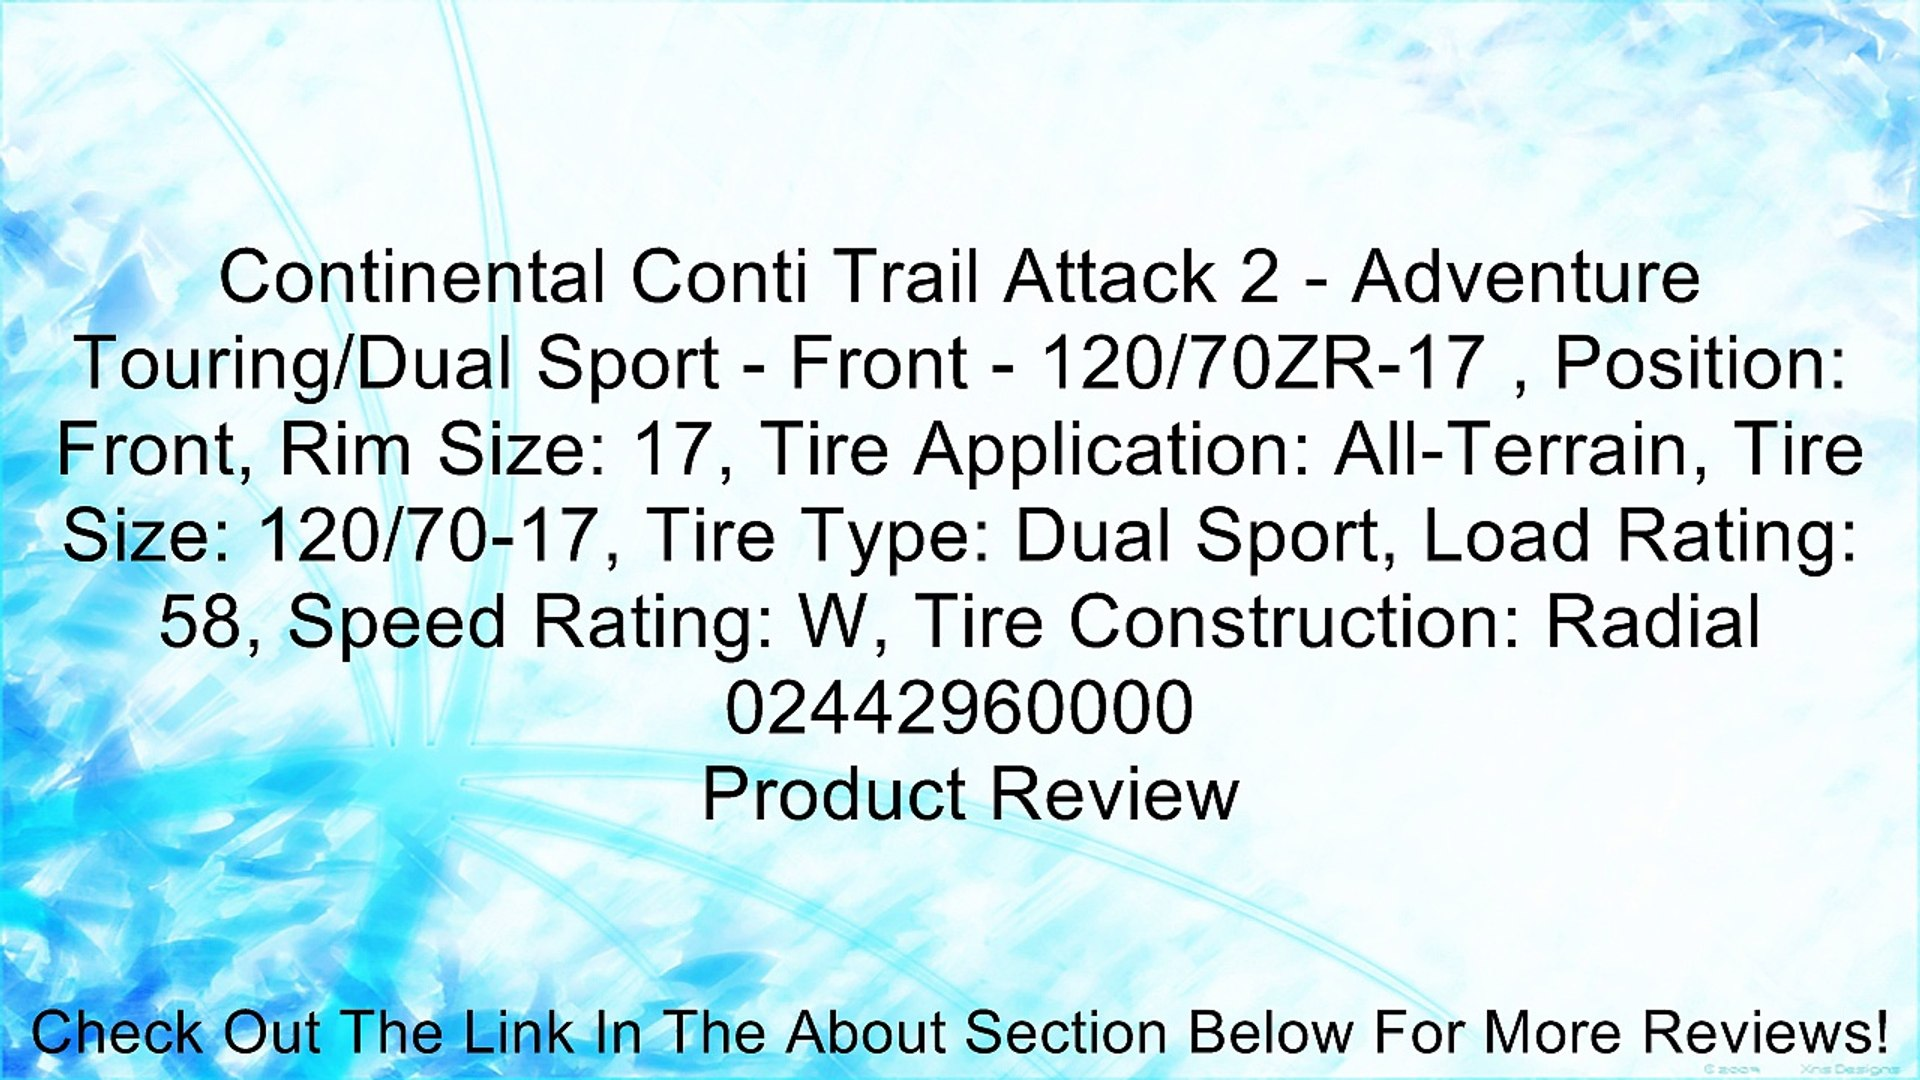 Continental Conti Trail Attack 2 - Adventure Touring/Dual Sport - Front - 120/70ZR-17 , Position: Fr